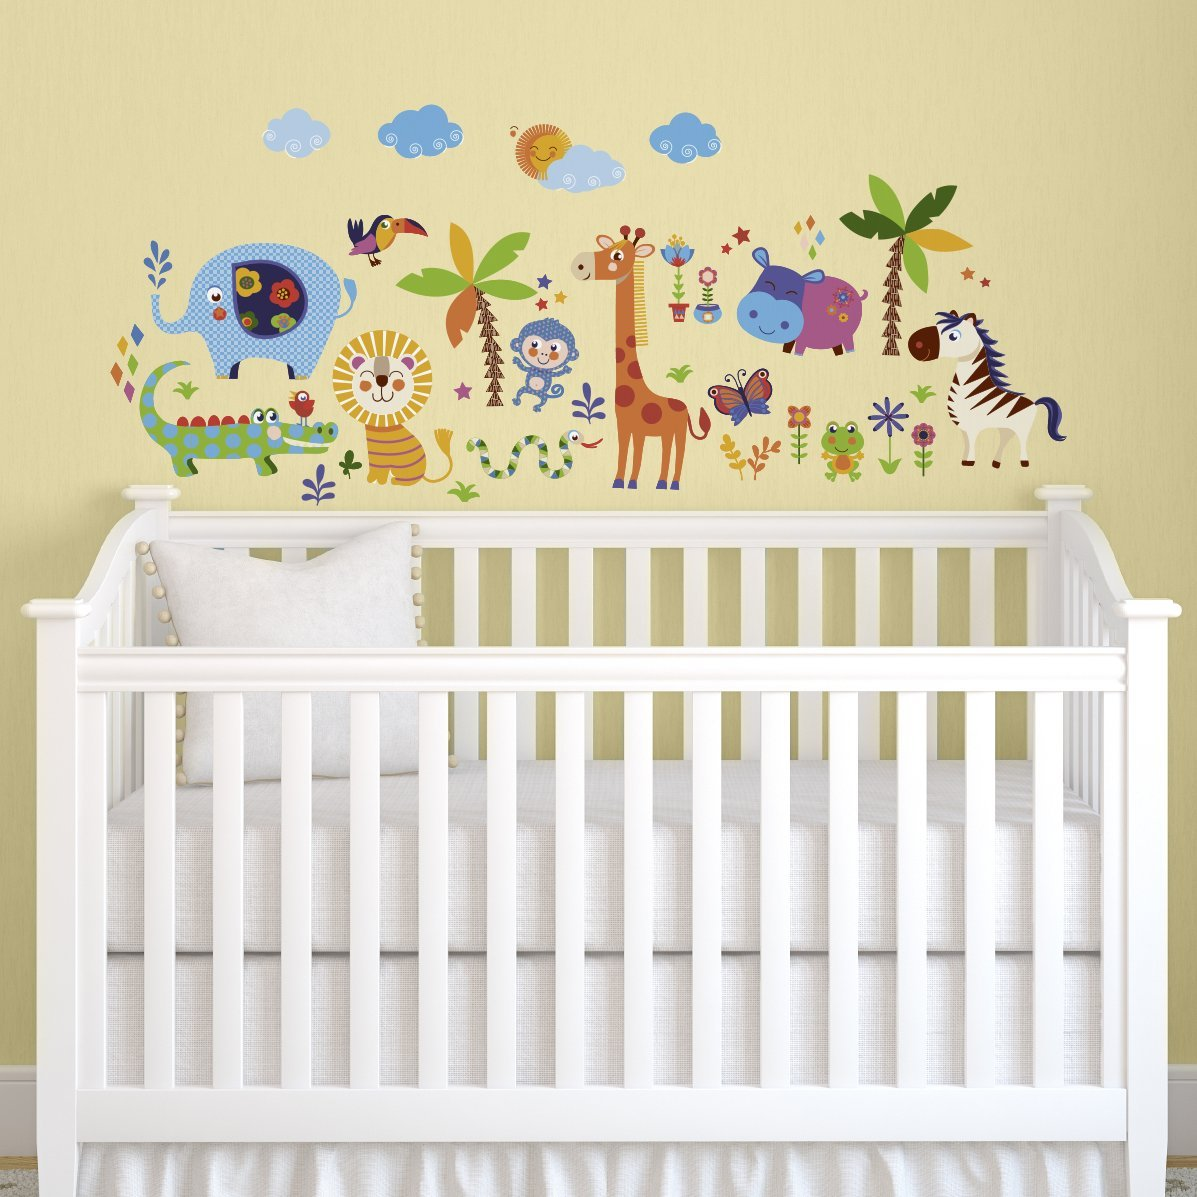 Amazon.com: Crazy Jungle Animals Baby/Nursery Wall Sticker Decals ...